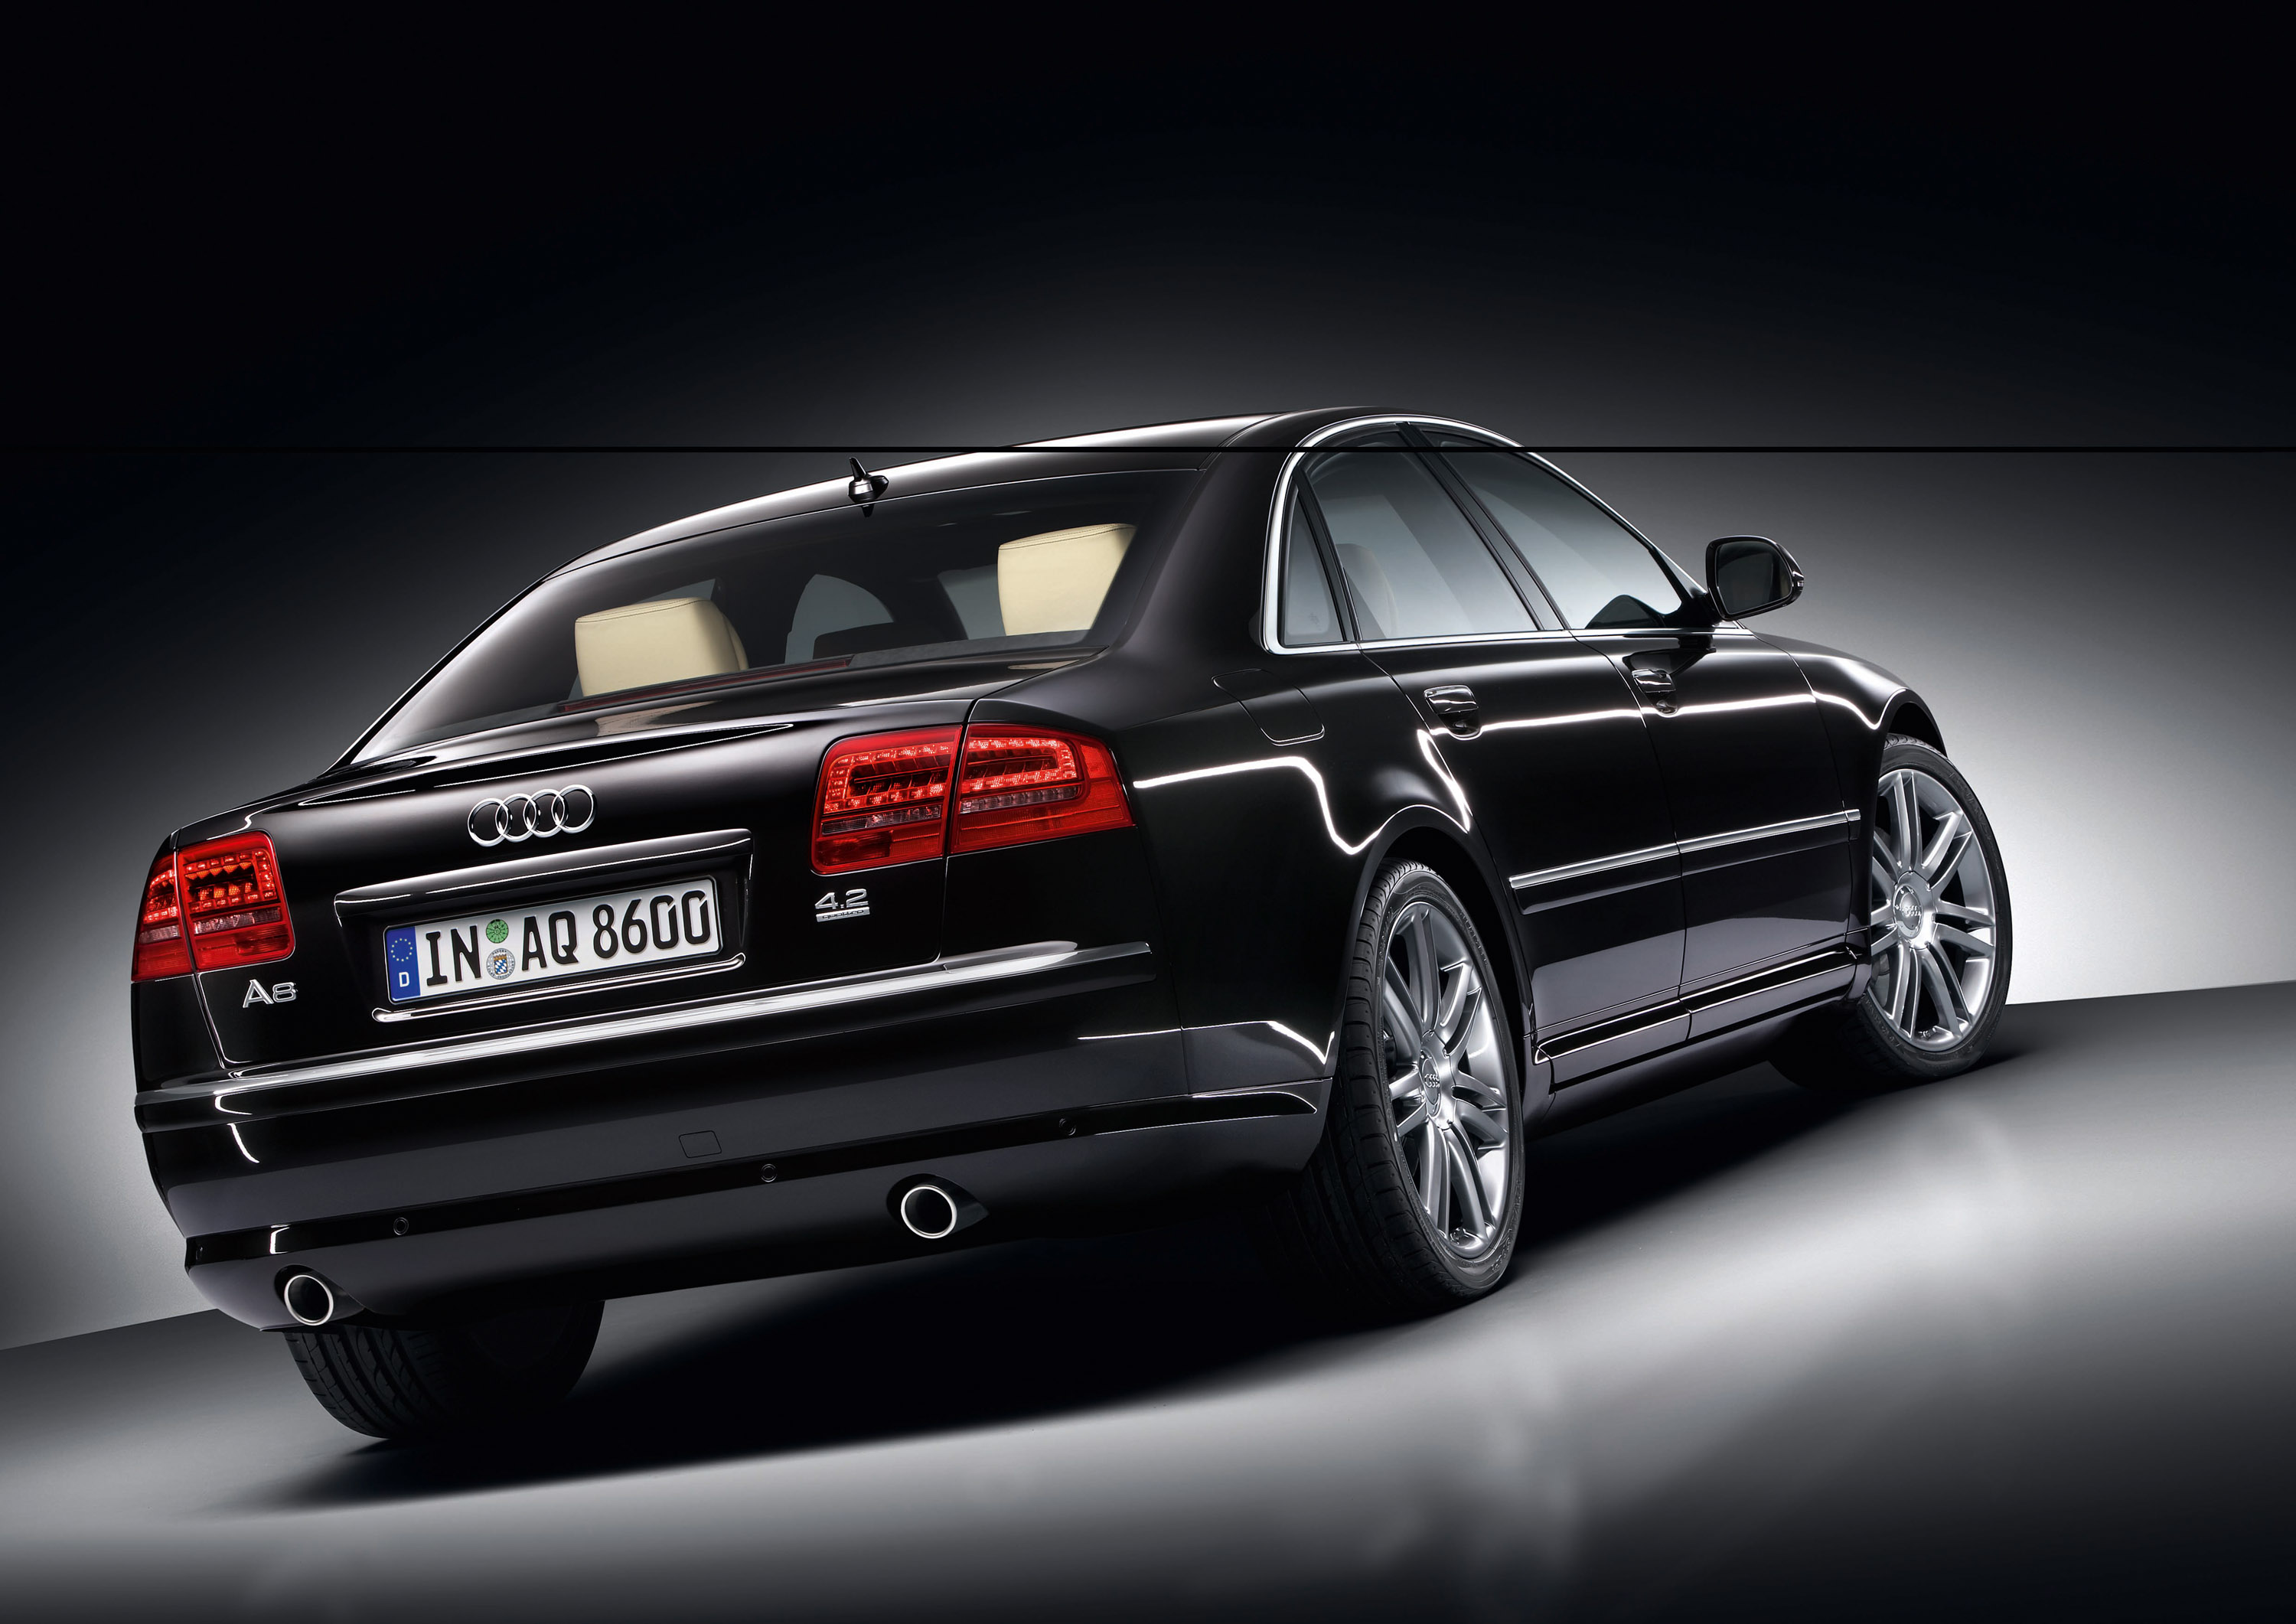 New Design And Equipment Packages For Audi A8